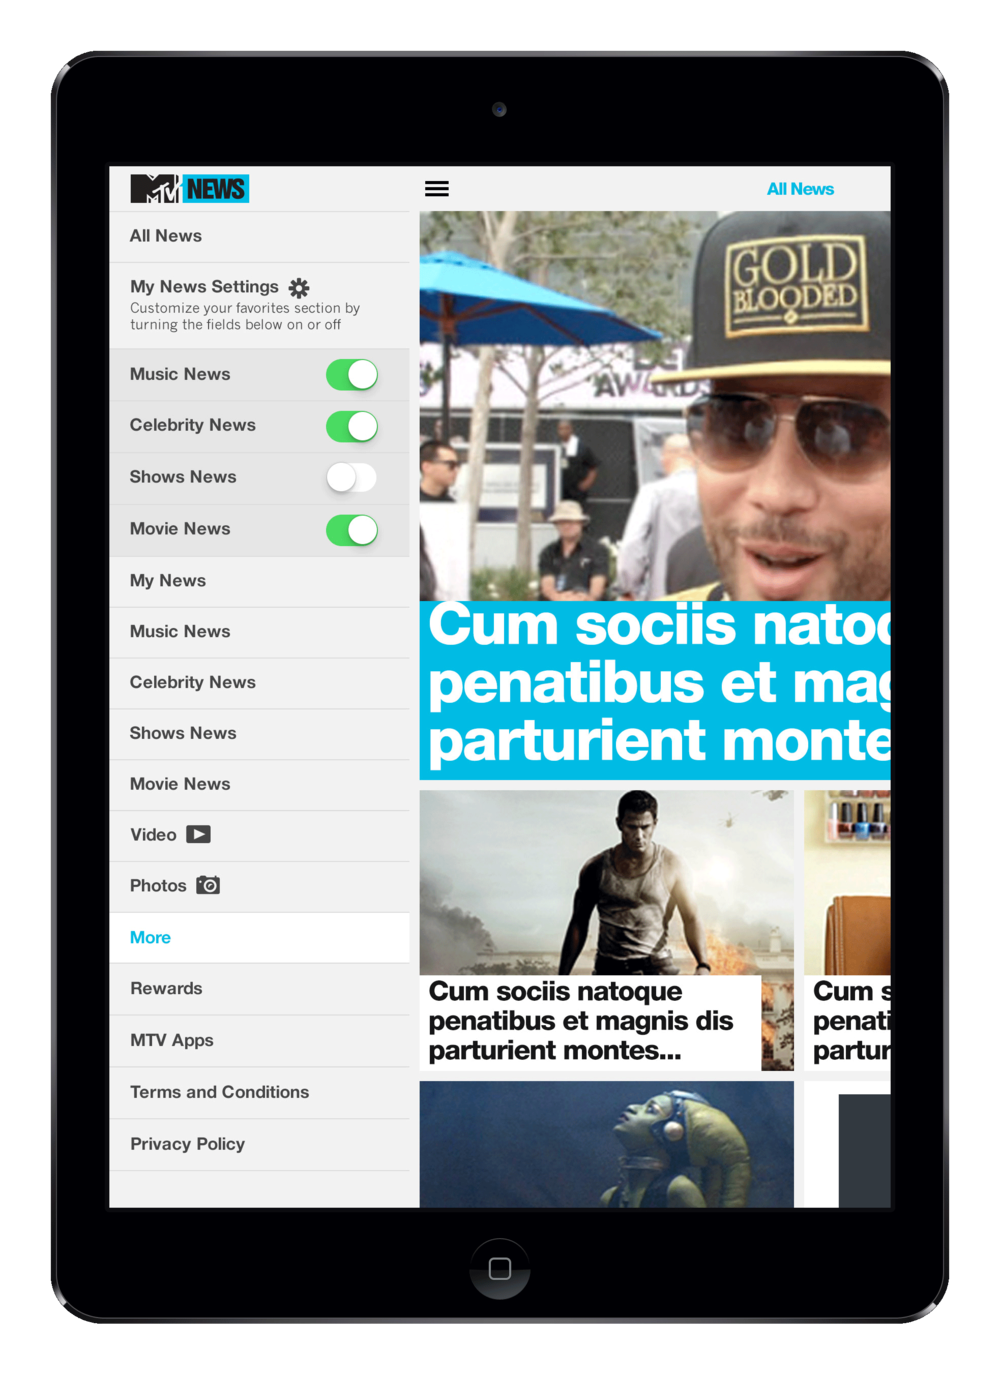 mtv-news-ipad-screens-04.png